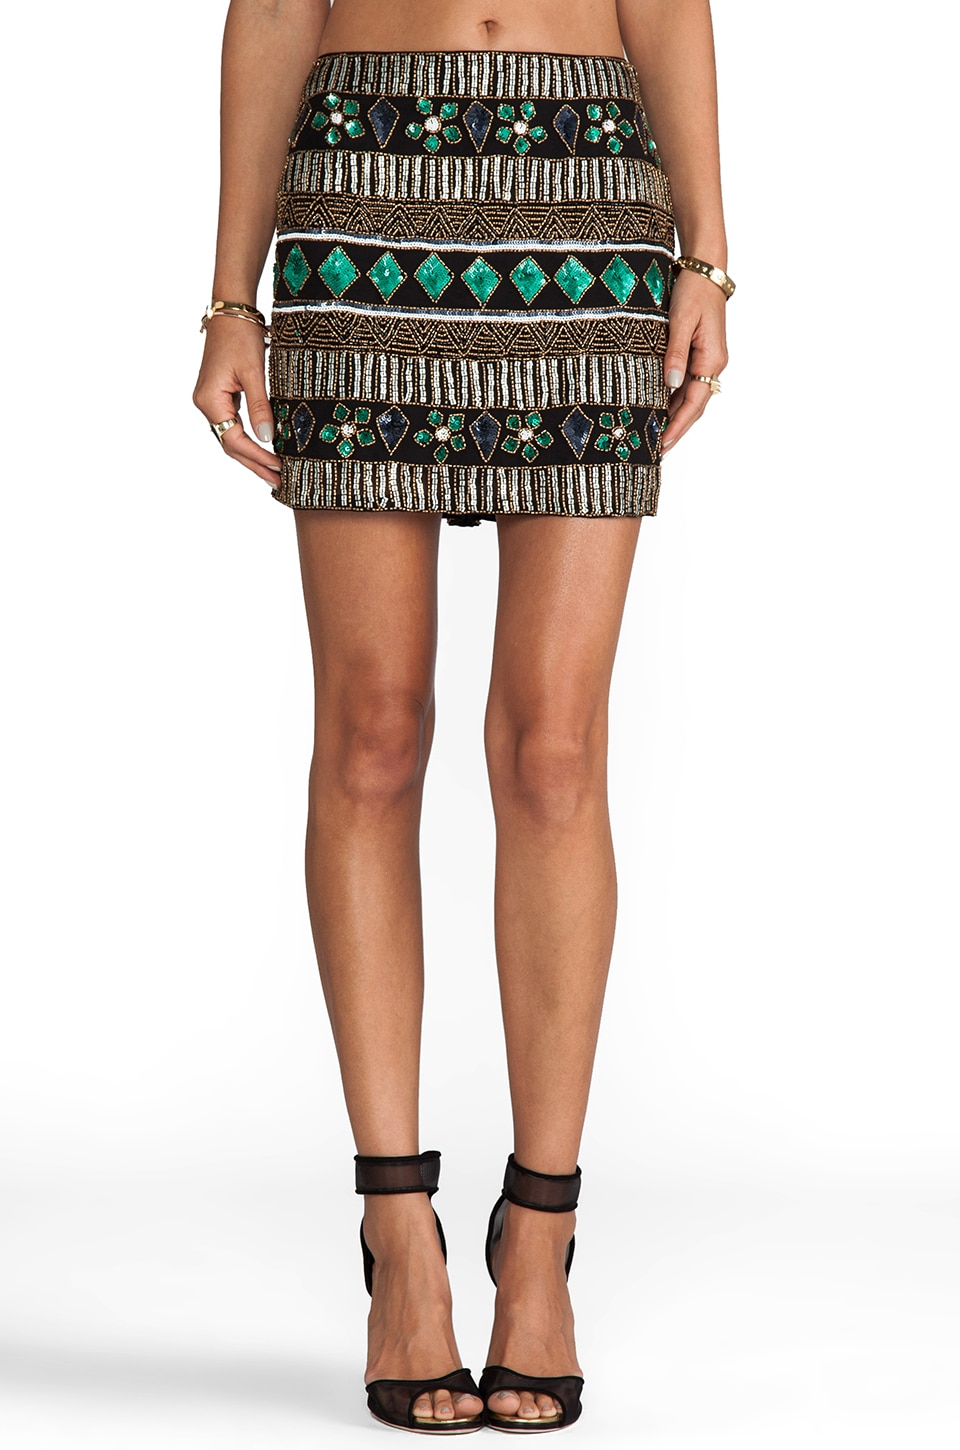 Yumi Kim Ana Skirt in Black/Green Mix